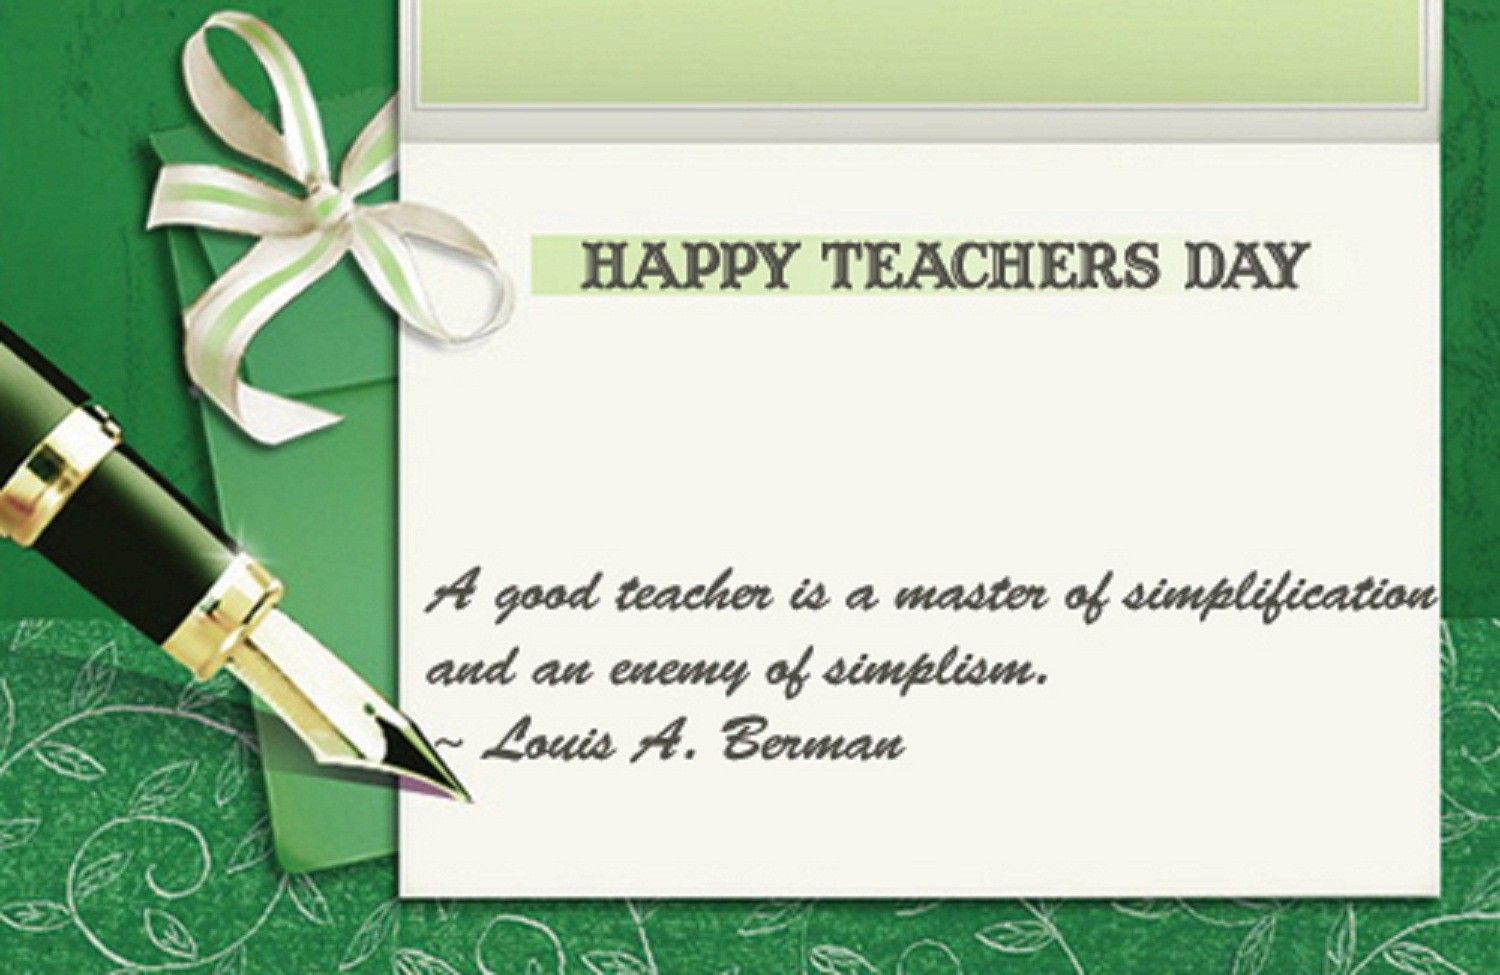 Teacher With Images Teachers Day Card Teachers Day Greetings